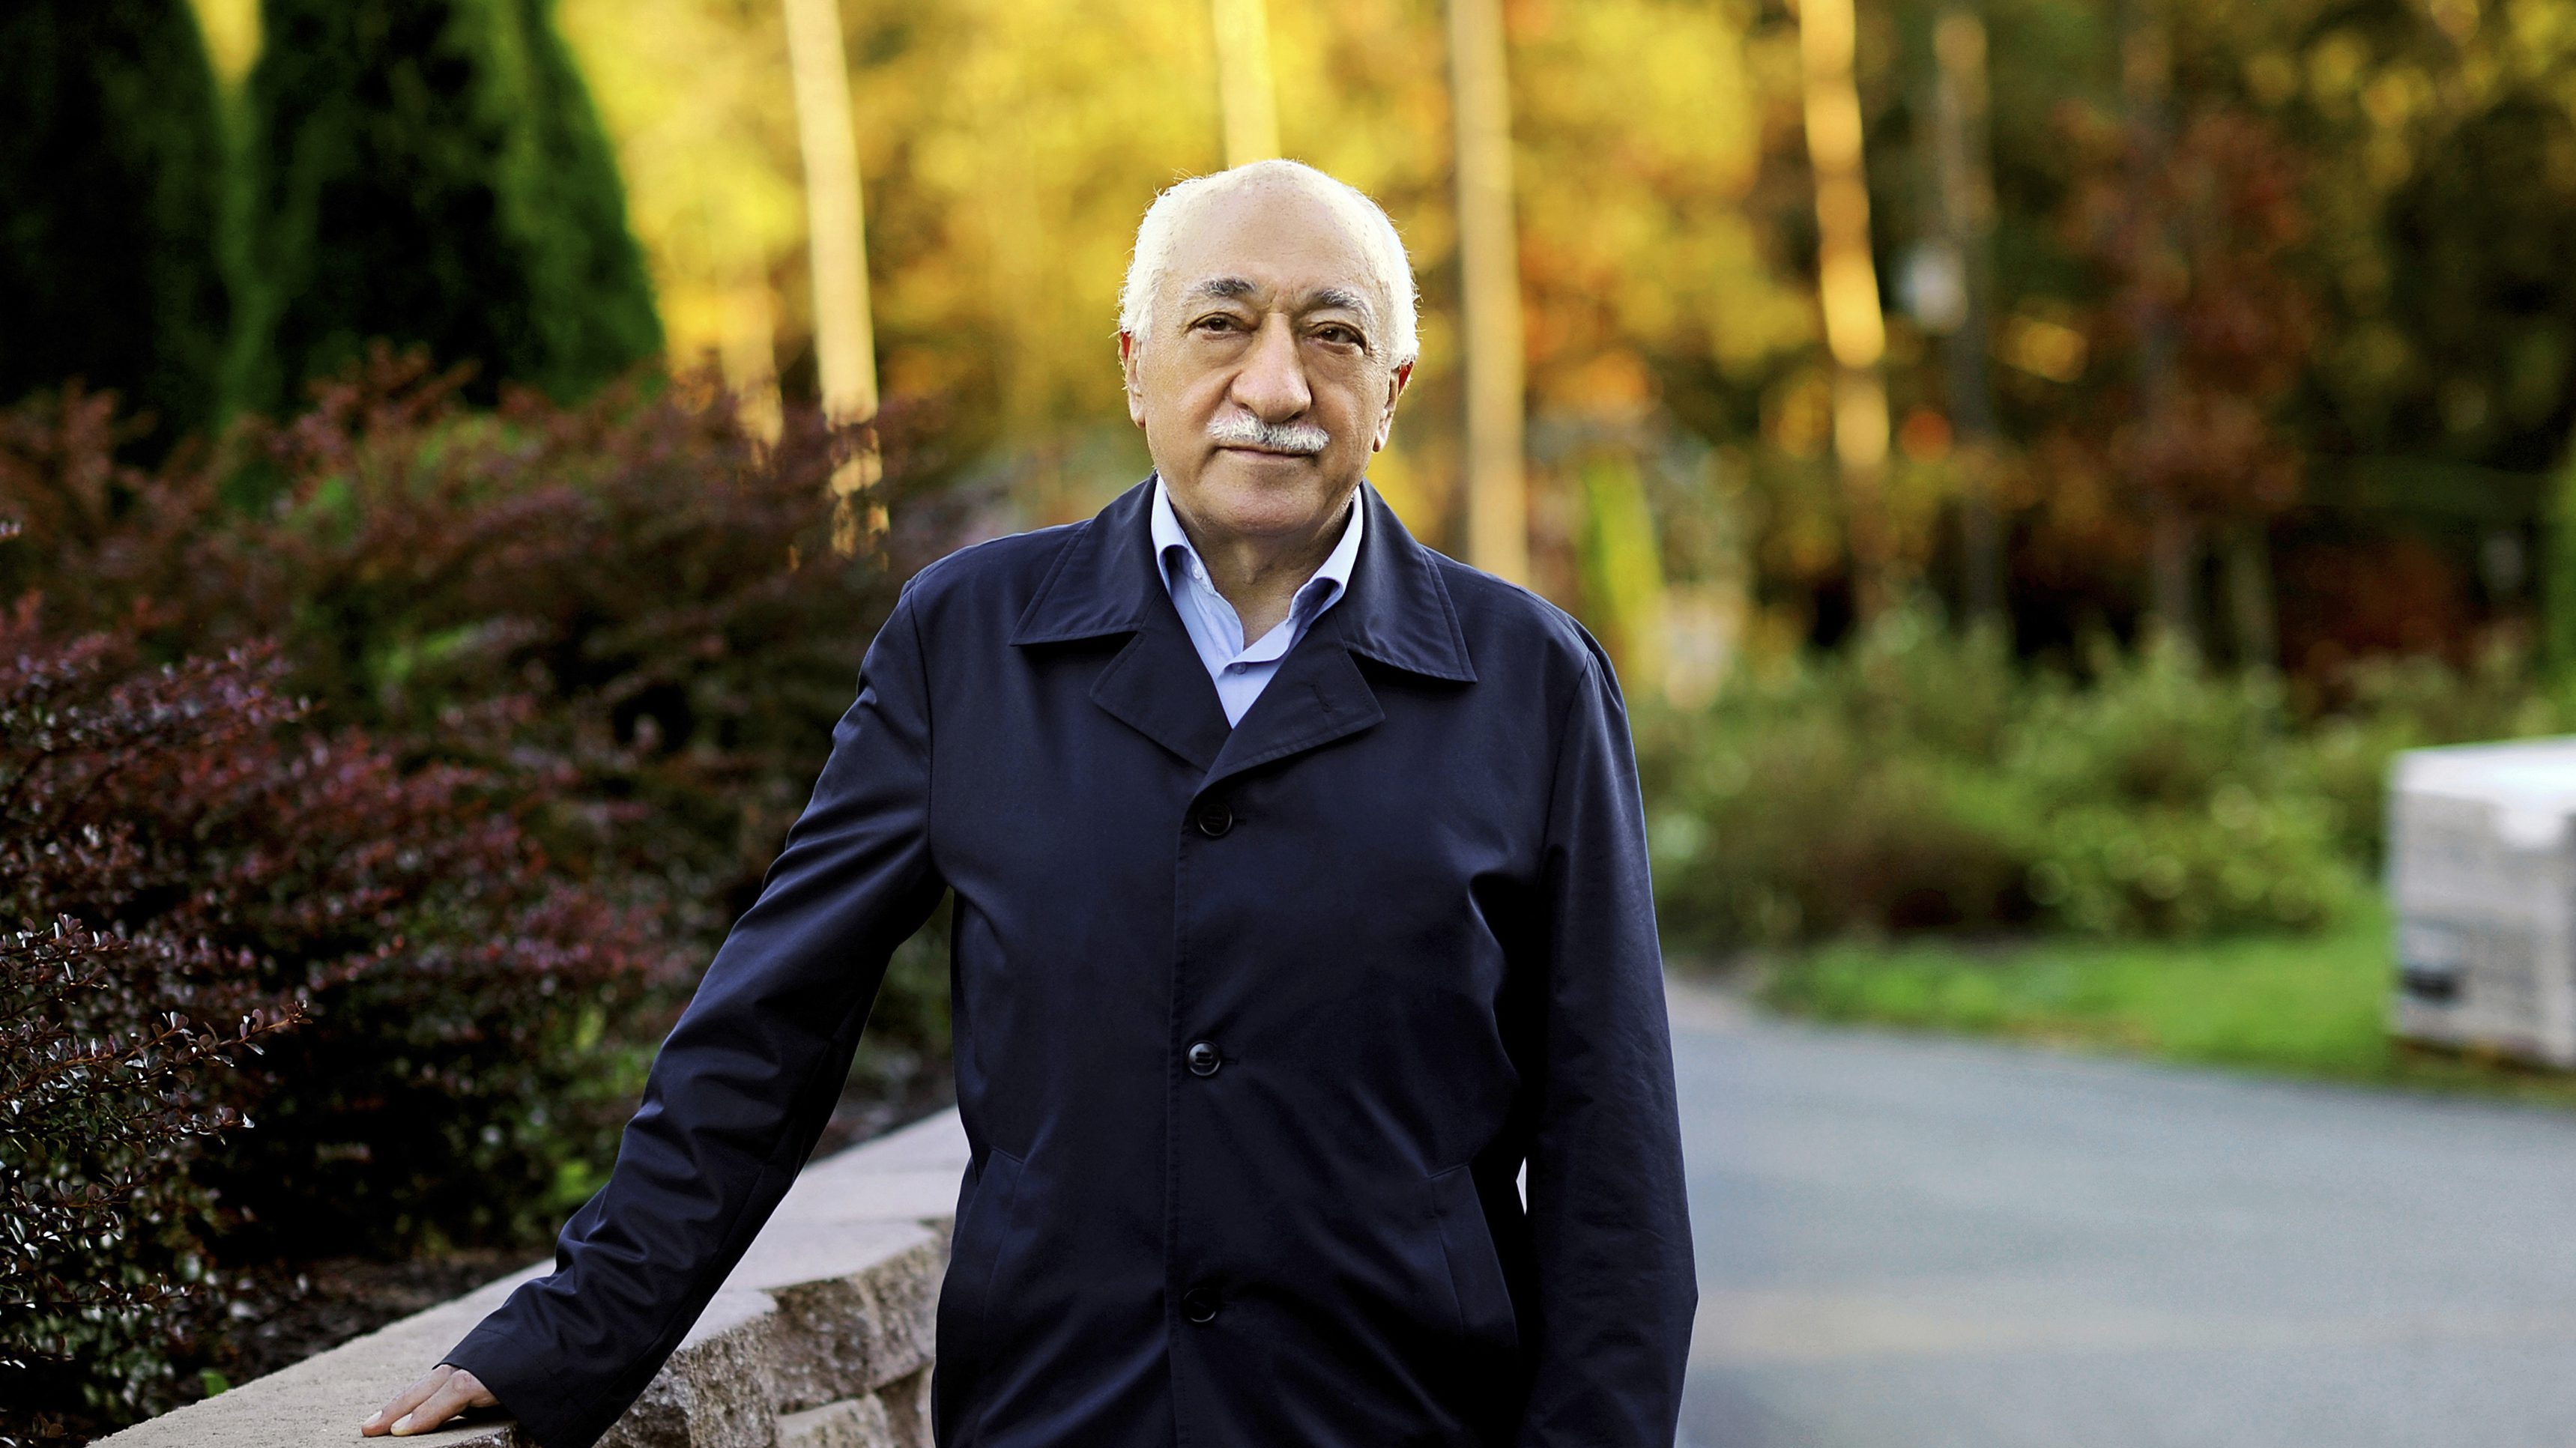 Islamic preacher Fethullah Gulen is pictured at his residence in Saylorsburg, Pennsylvania September 24, 2013. Born in Erzurum, eastern Turkey, Gulen built up his reputation as a Muslim preacher with intense sermons that often moved him to tears. From his base in Izmir, he toured Turkey stressing the need to embrace scientific progress, shun radicalism and build bridges to the West and other faiths. The first Gulen school opened in 1982. In the following decades, the movement became a spectacular success, setting up hundreds of schools that turned out generations of capable graduates, who gravitated to influential jobs in the judiciary, police, media, state bureaucracy and private business. Picture taken September 24, 2013.